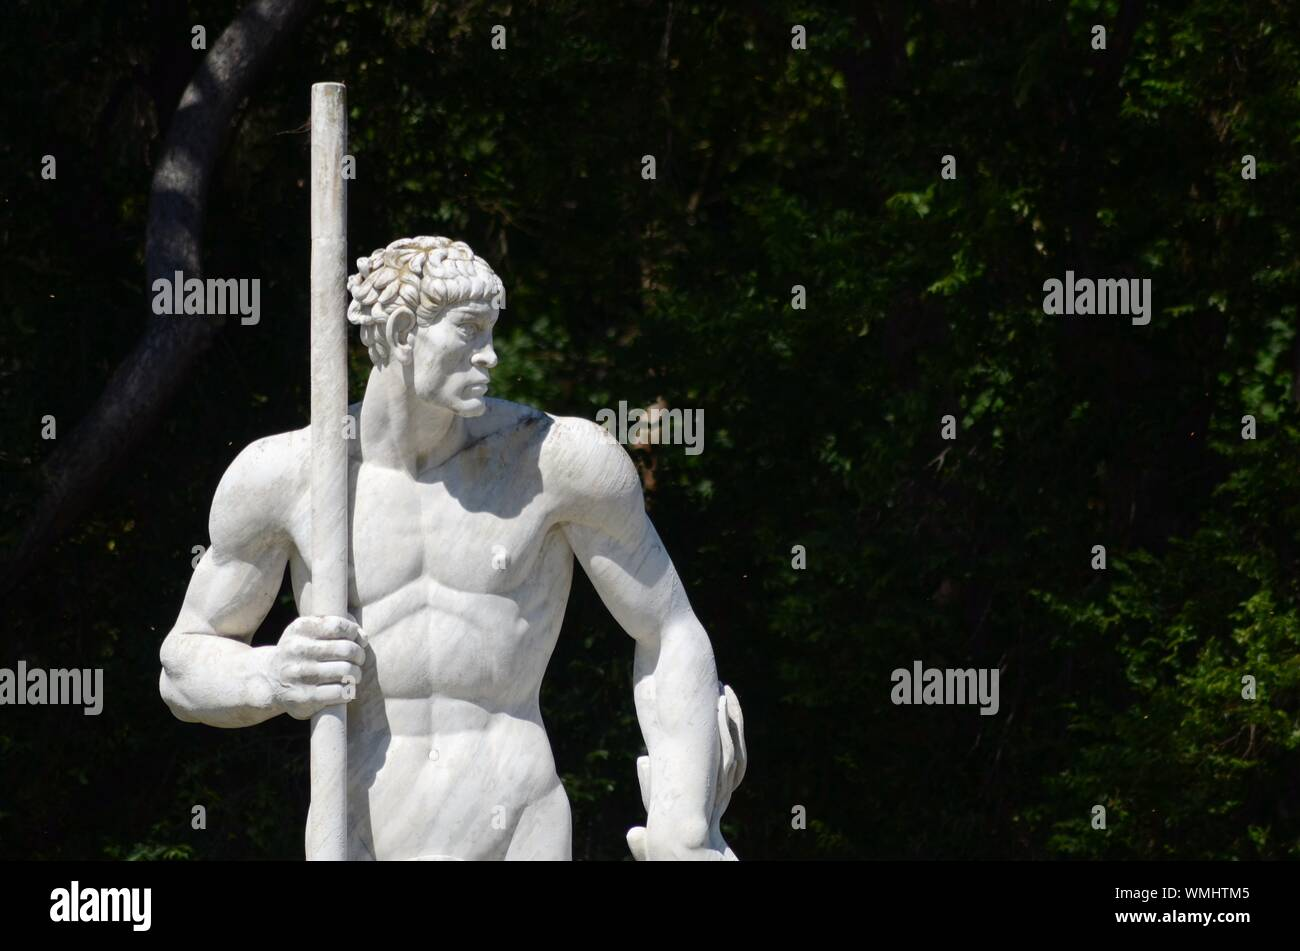 marble.htm marble statue at garden stock photo 270841205 alamy  marble statue at garden stock photo